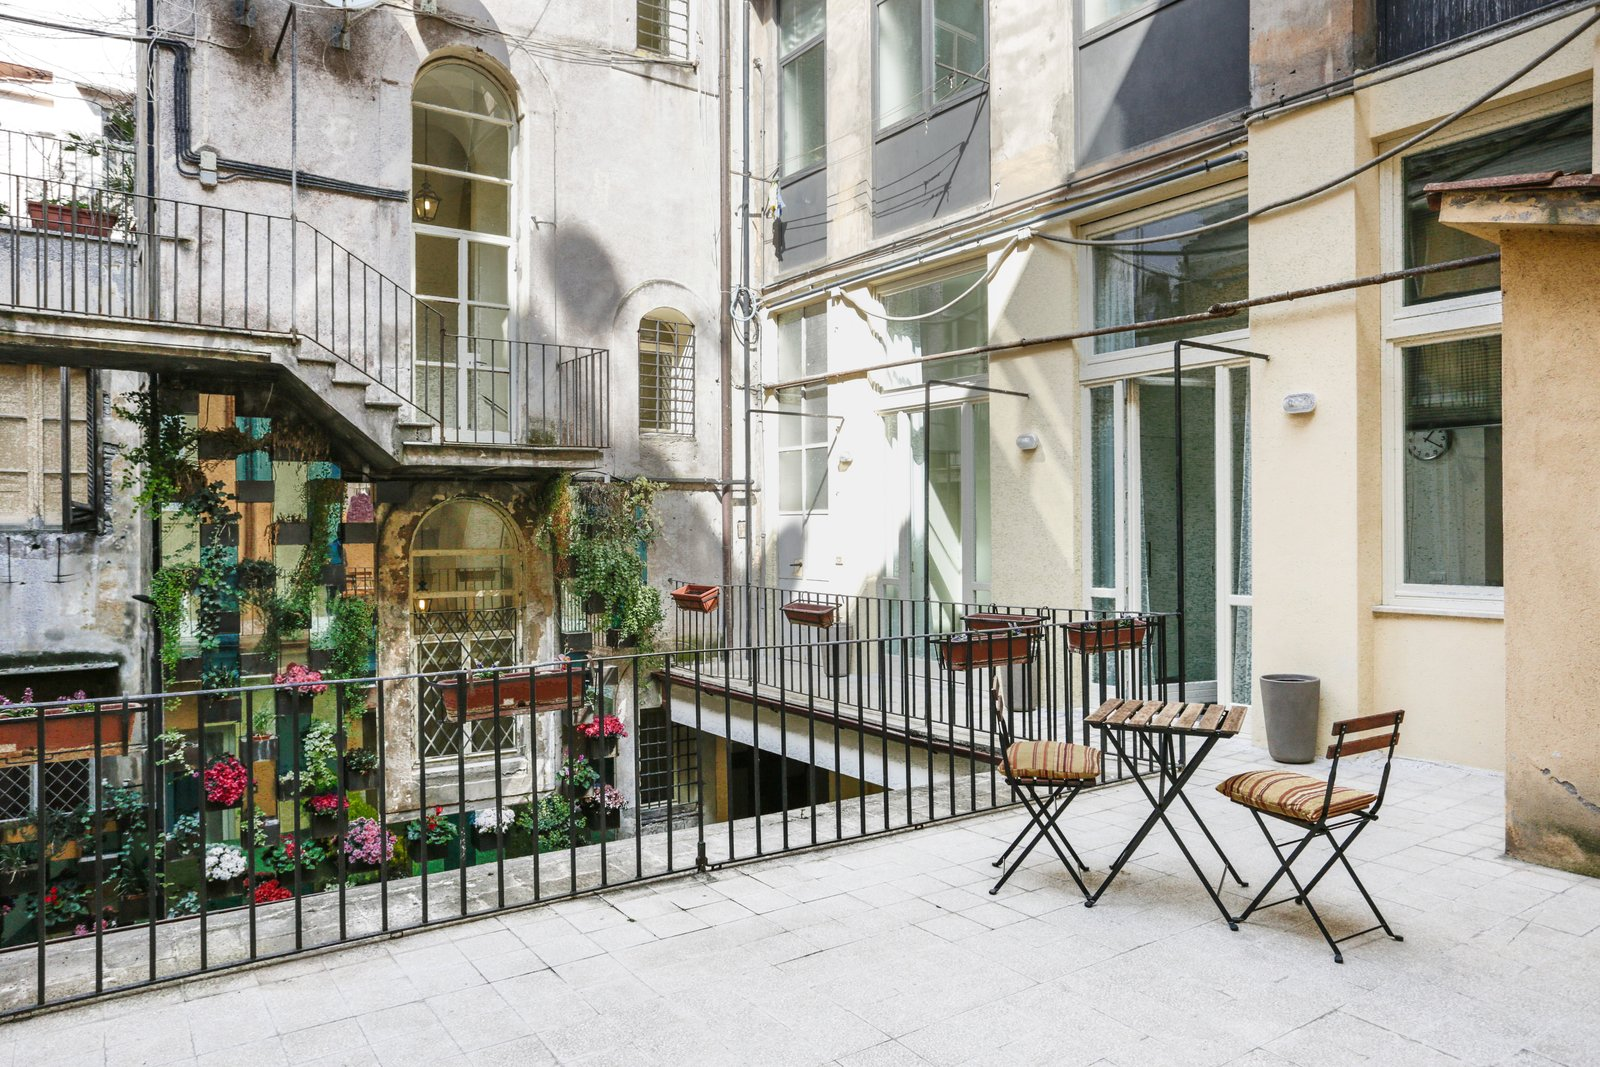 7 Places to Rent For the Perfect Roman Holiday - Dwell